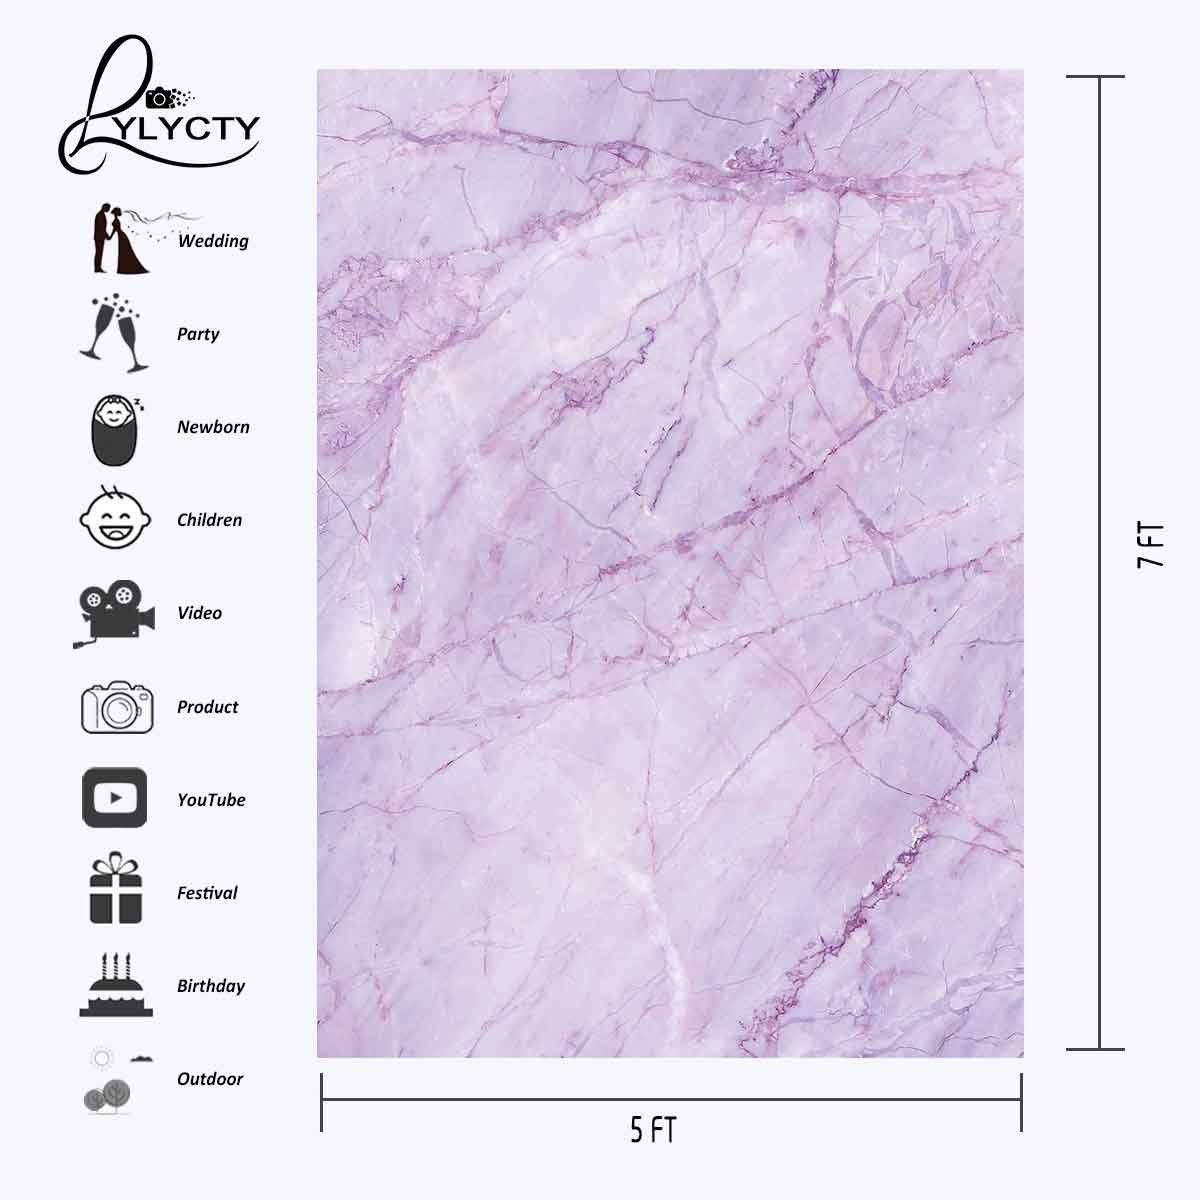 Image 3 - 5x7ft Violet Marble Texture Pattern Backdrop for Photo Shoot Background Photography Studio Props-in Photo Studio Accessories from Consumer Electronics